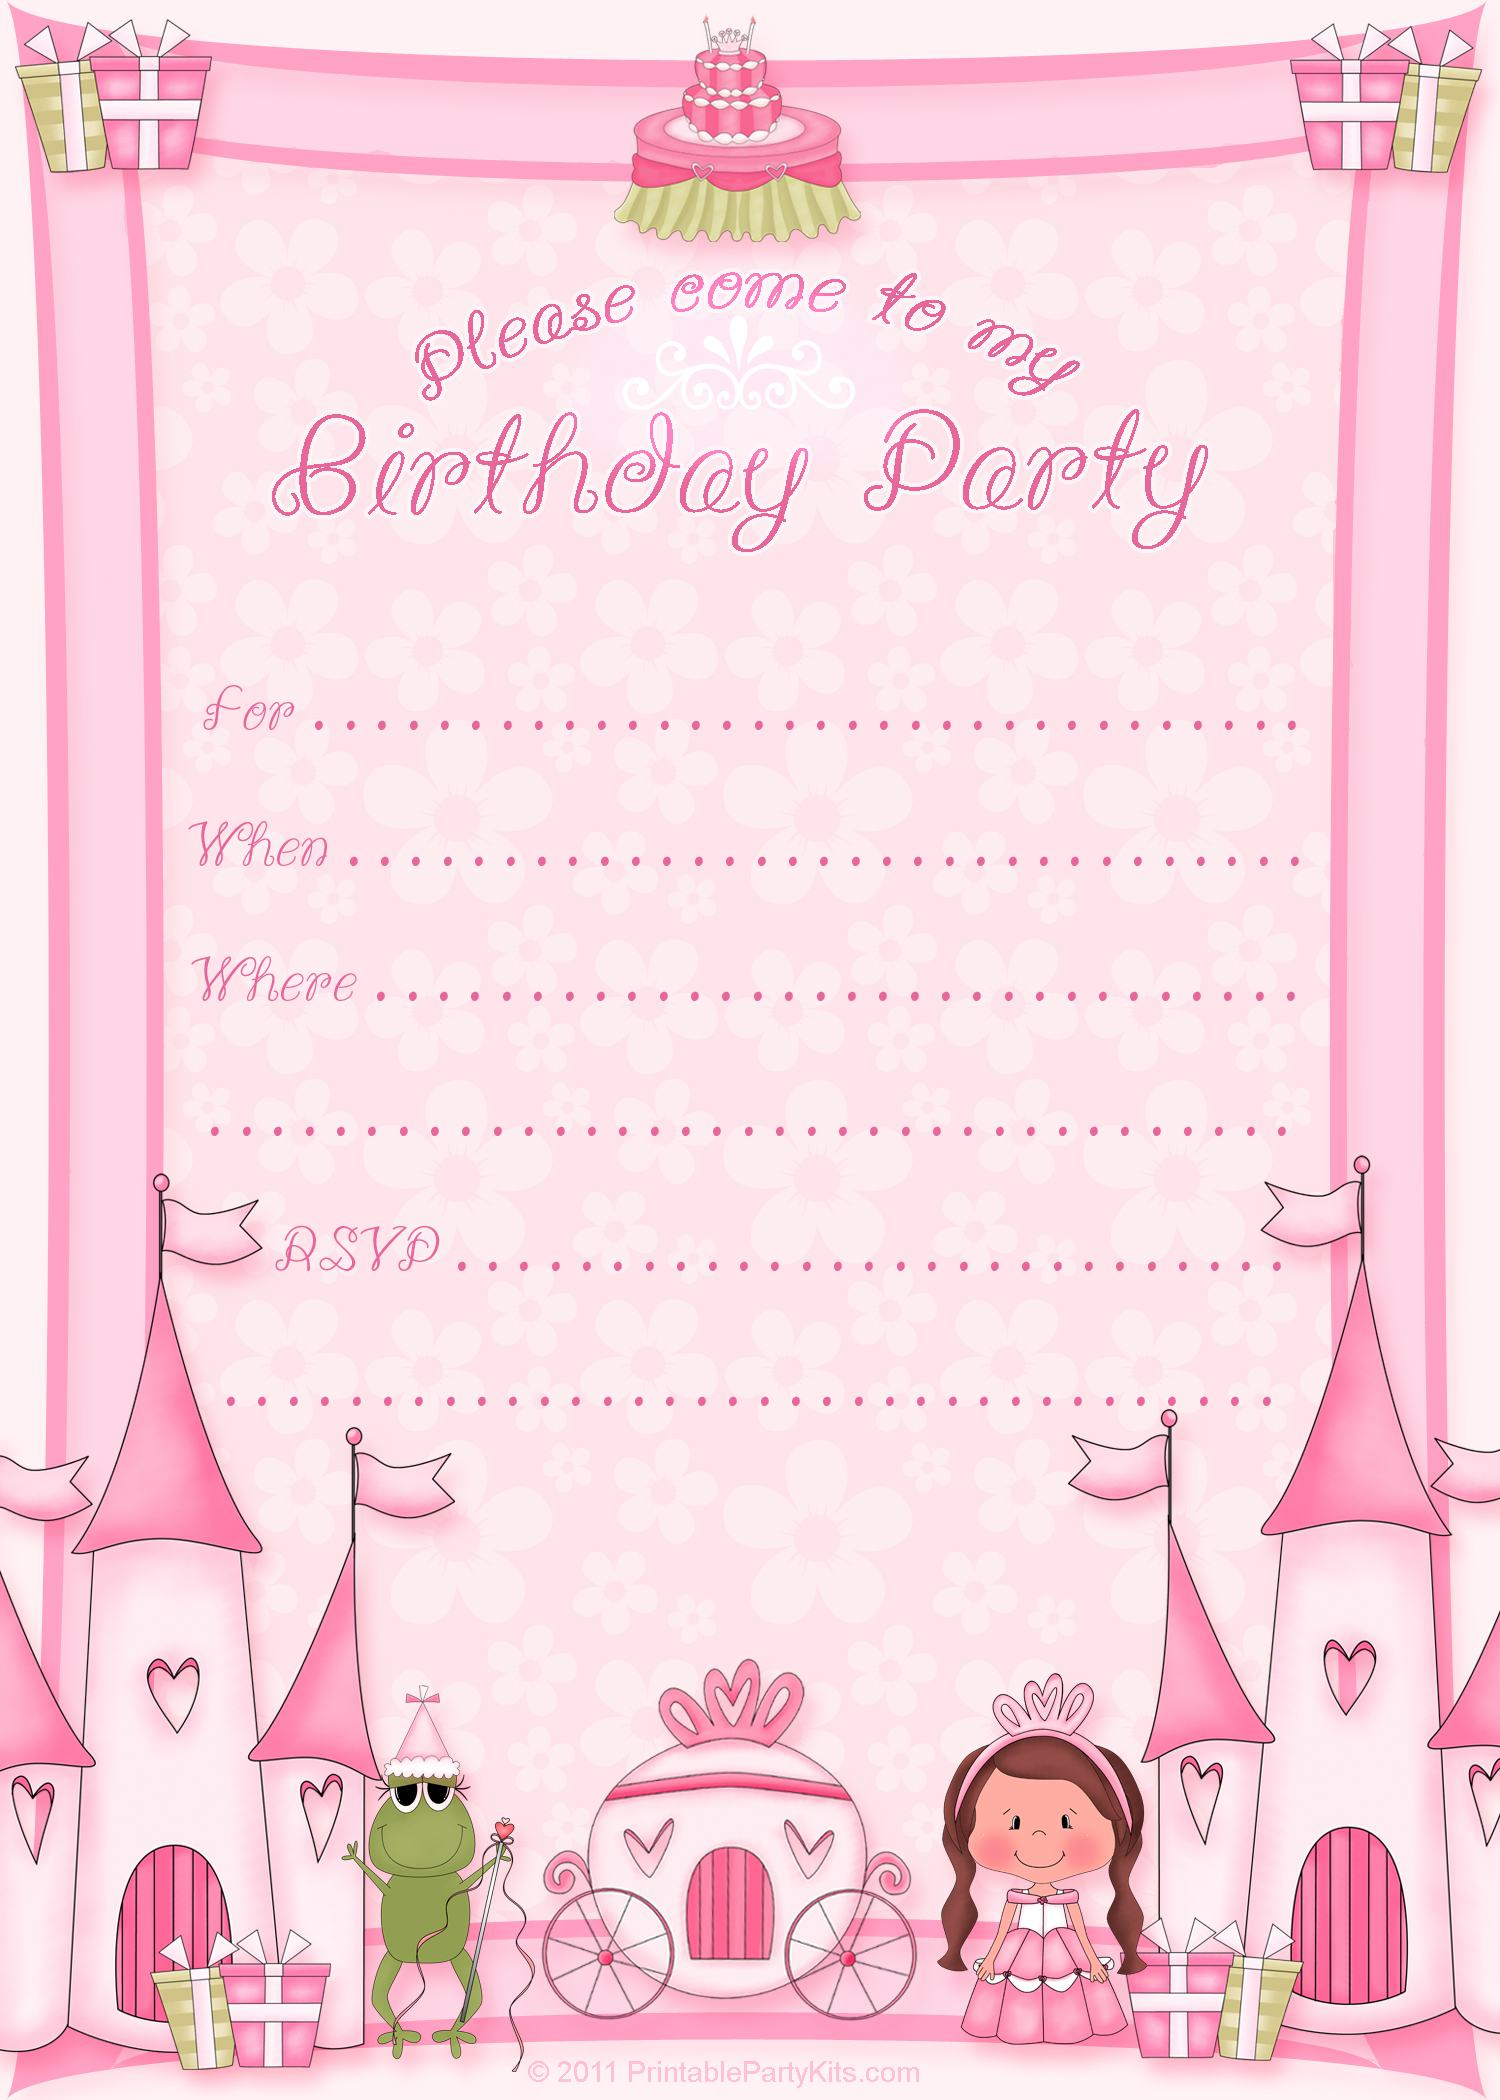 birthday invitation card template with photo ; birthday-invitation-card-birthday-invitation-card-maker-exotic-birthday-invitation-card-maker